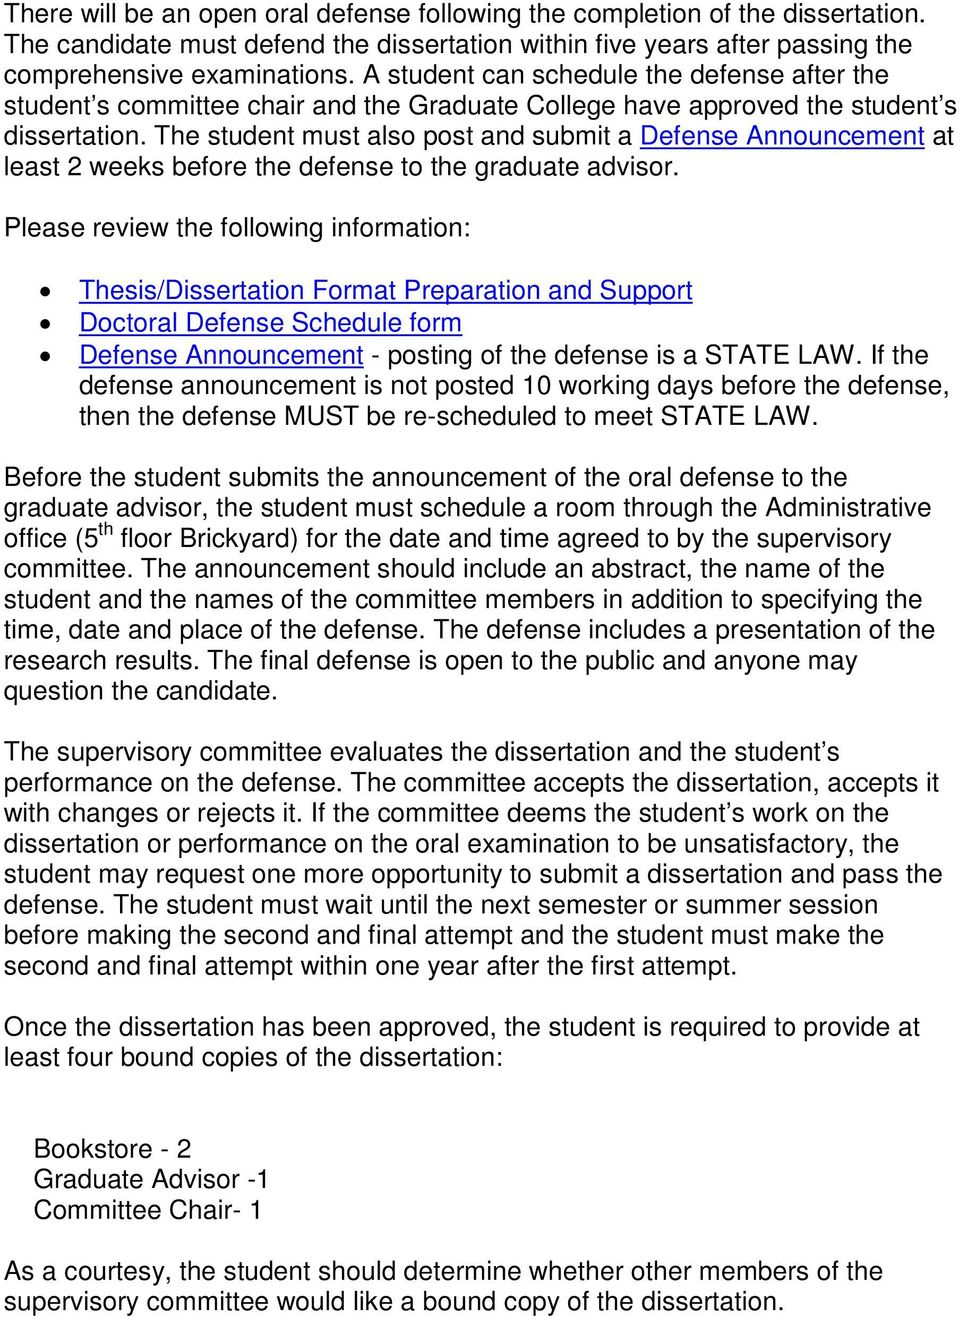 The student must also post and submit a Defense Announcement at least 2 weeks before the defense to the graduate advisor.